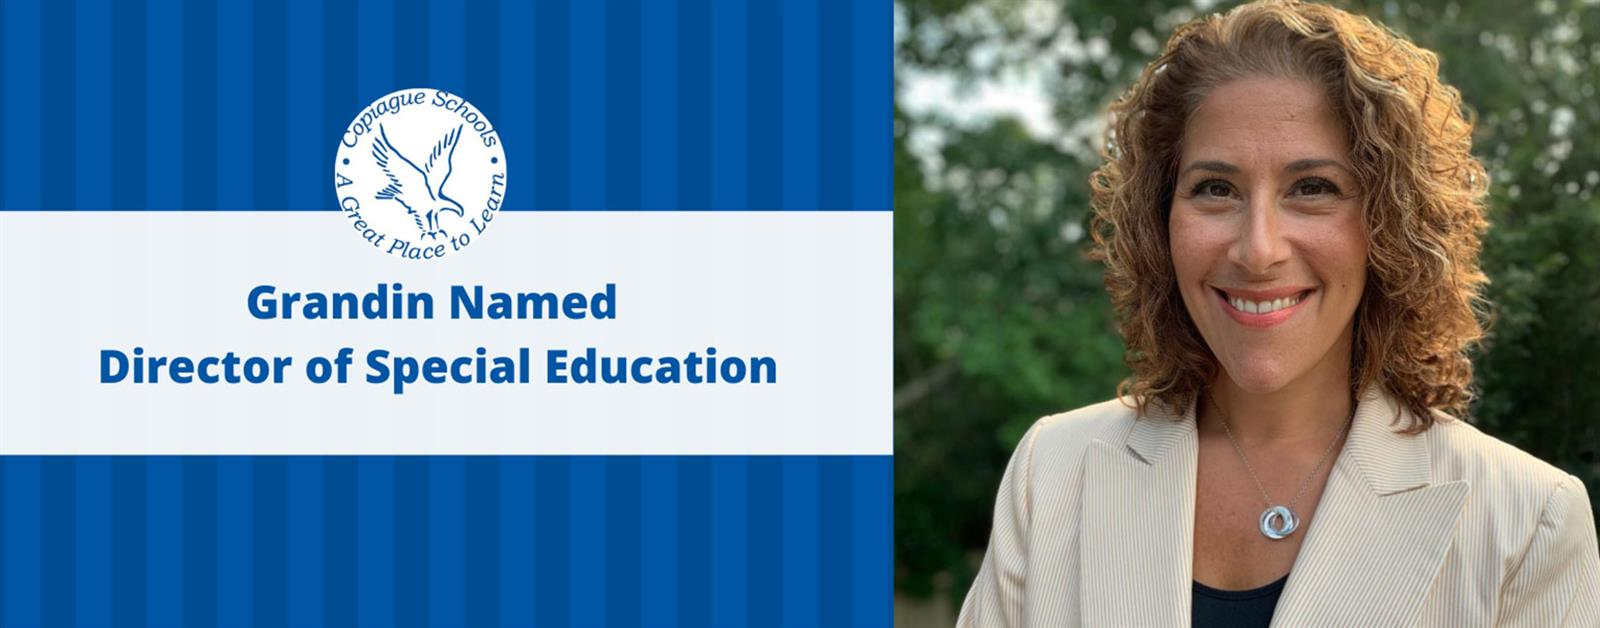 Grandin Named Director of Special Education